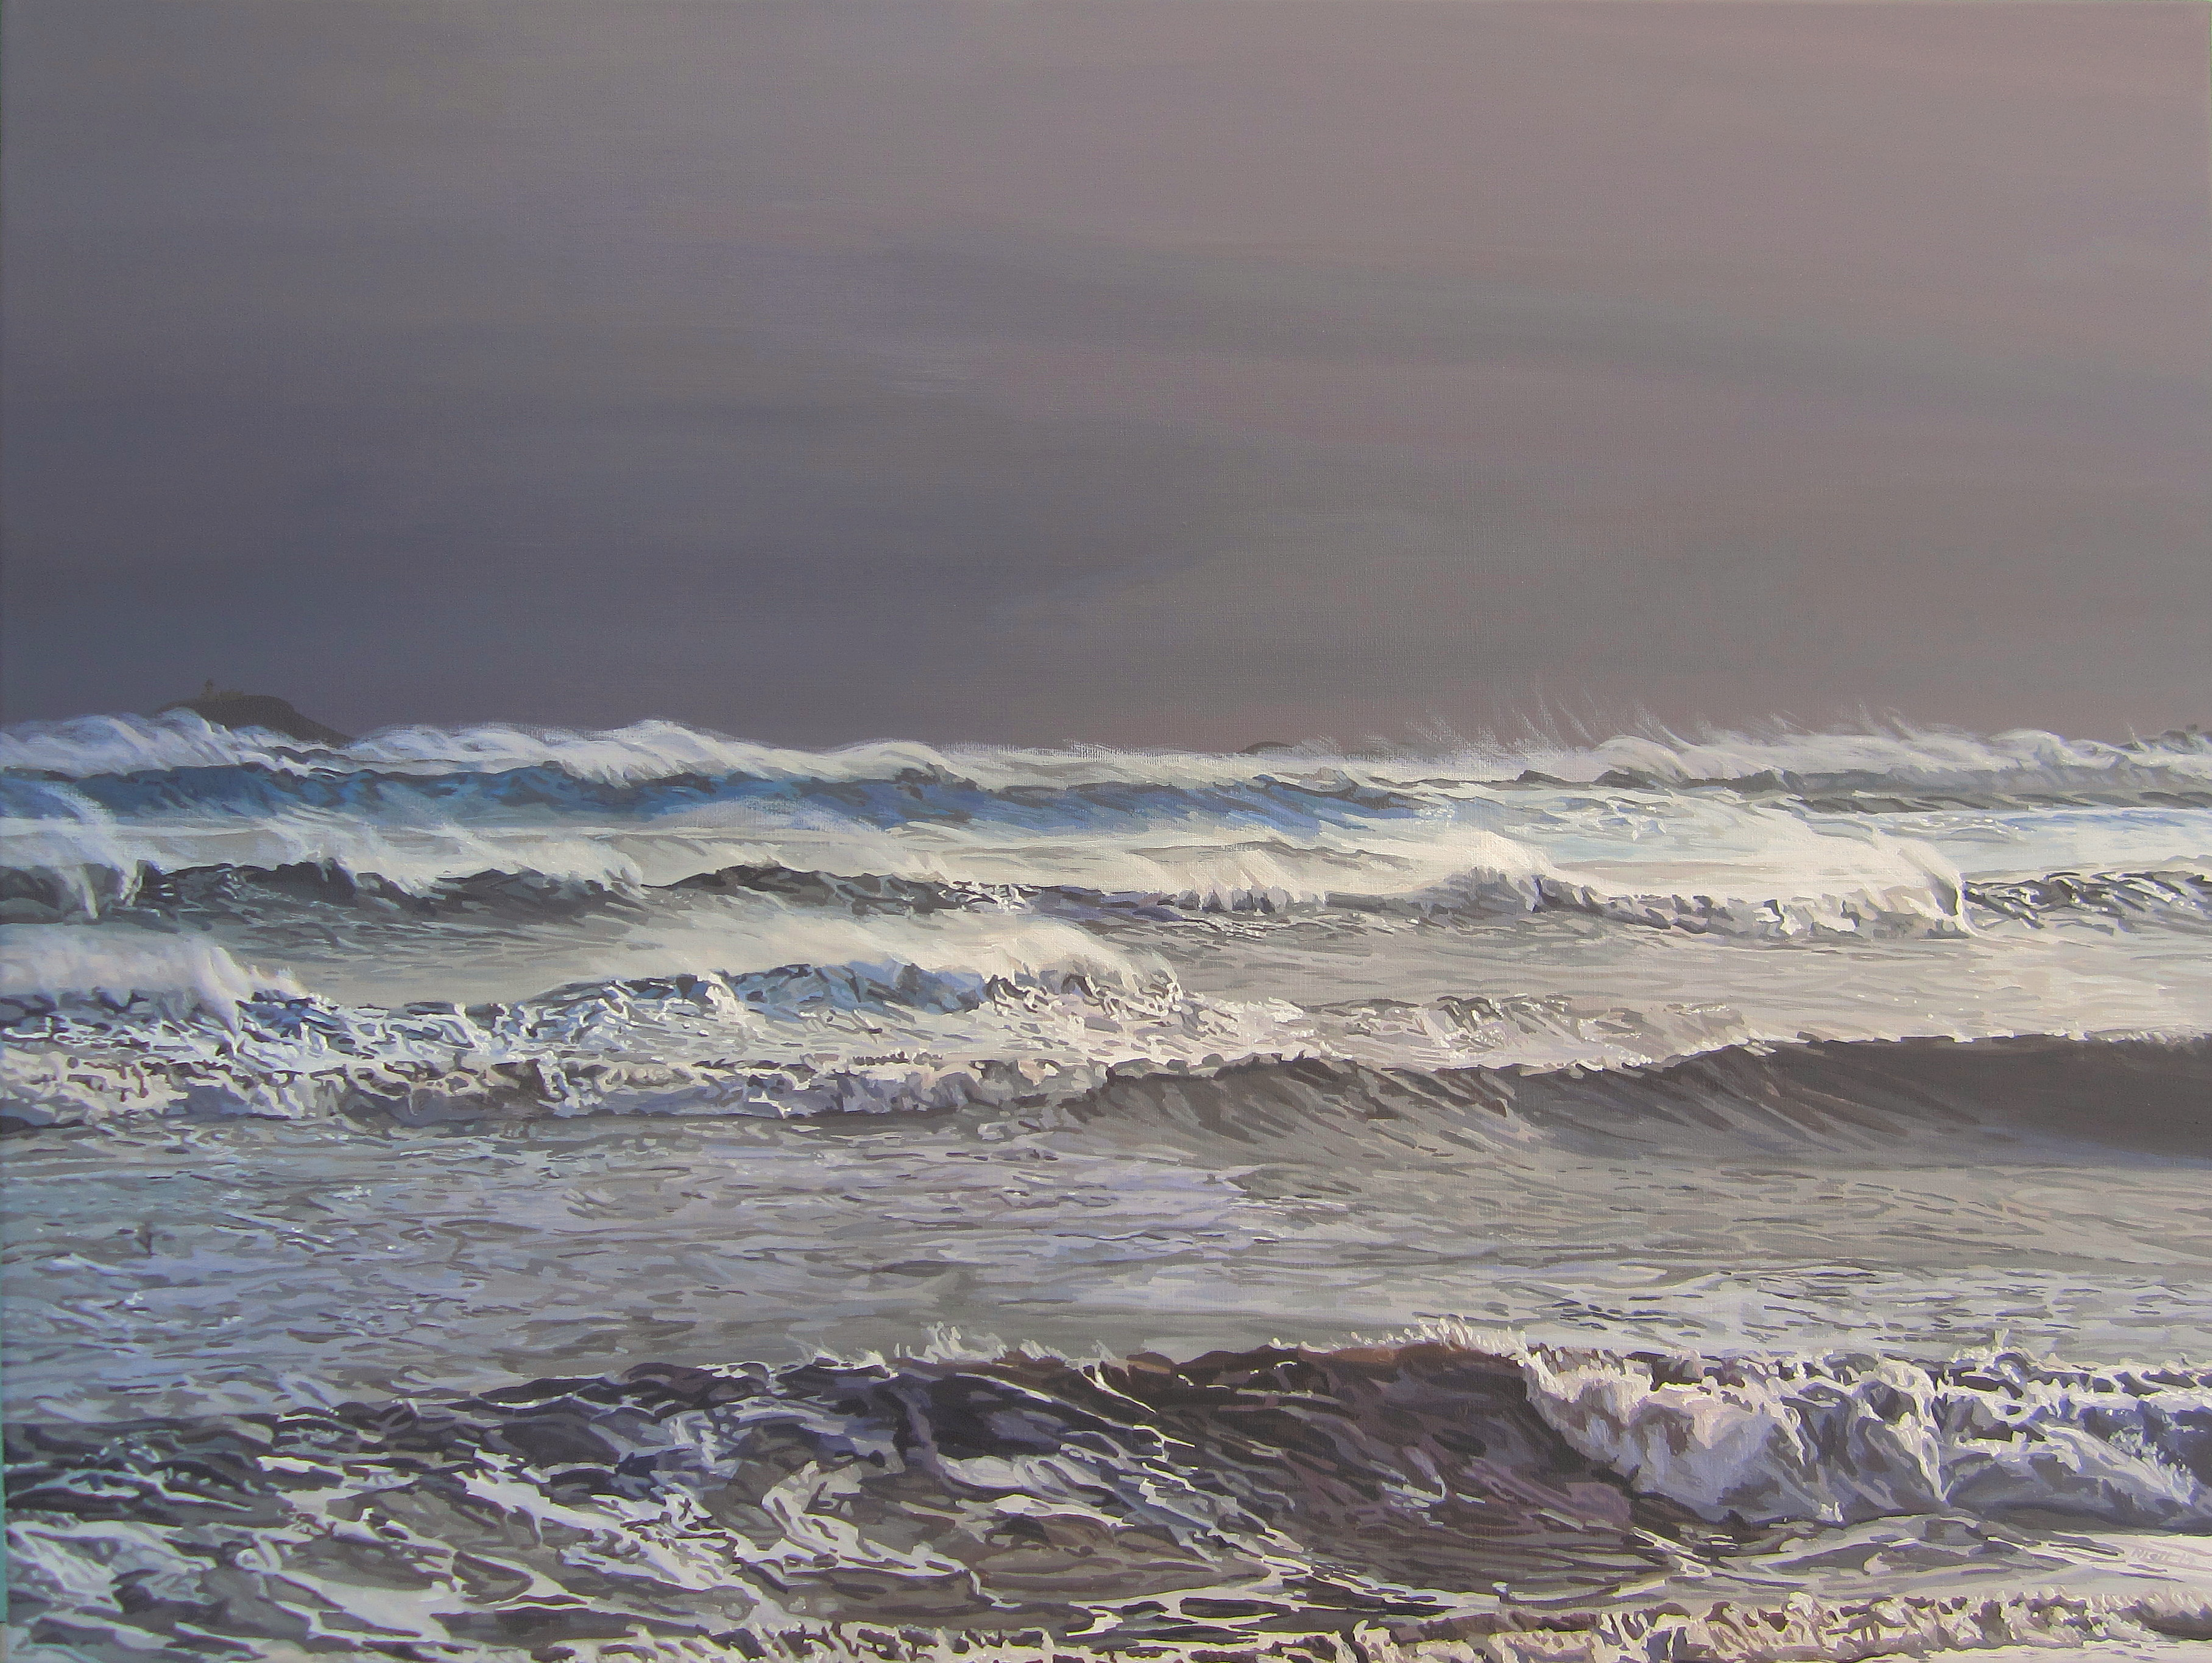 Storm Darwin Over Ballycotton Bay From Garryvoe by eastcorkpainter